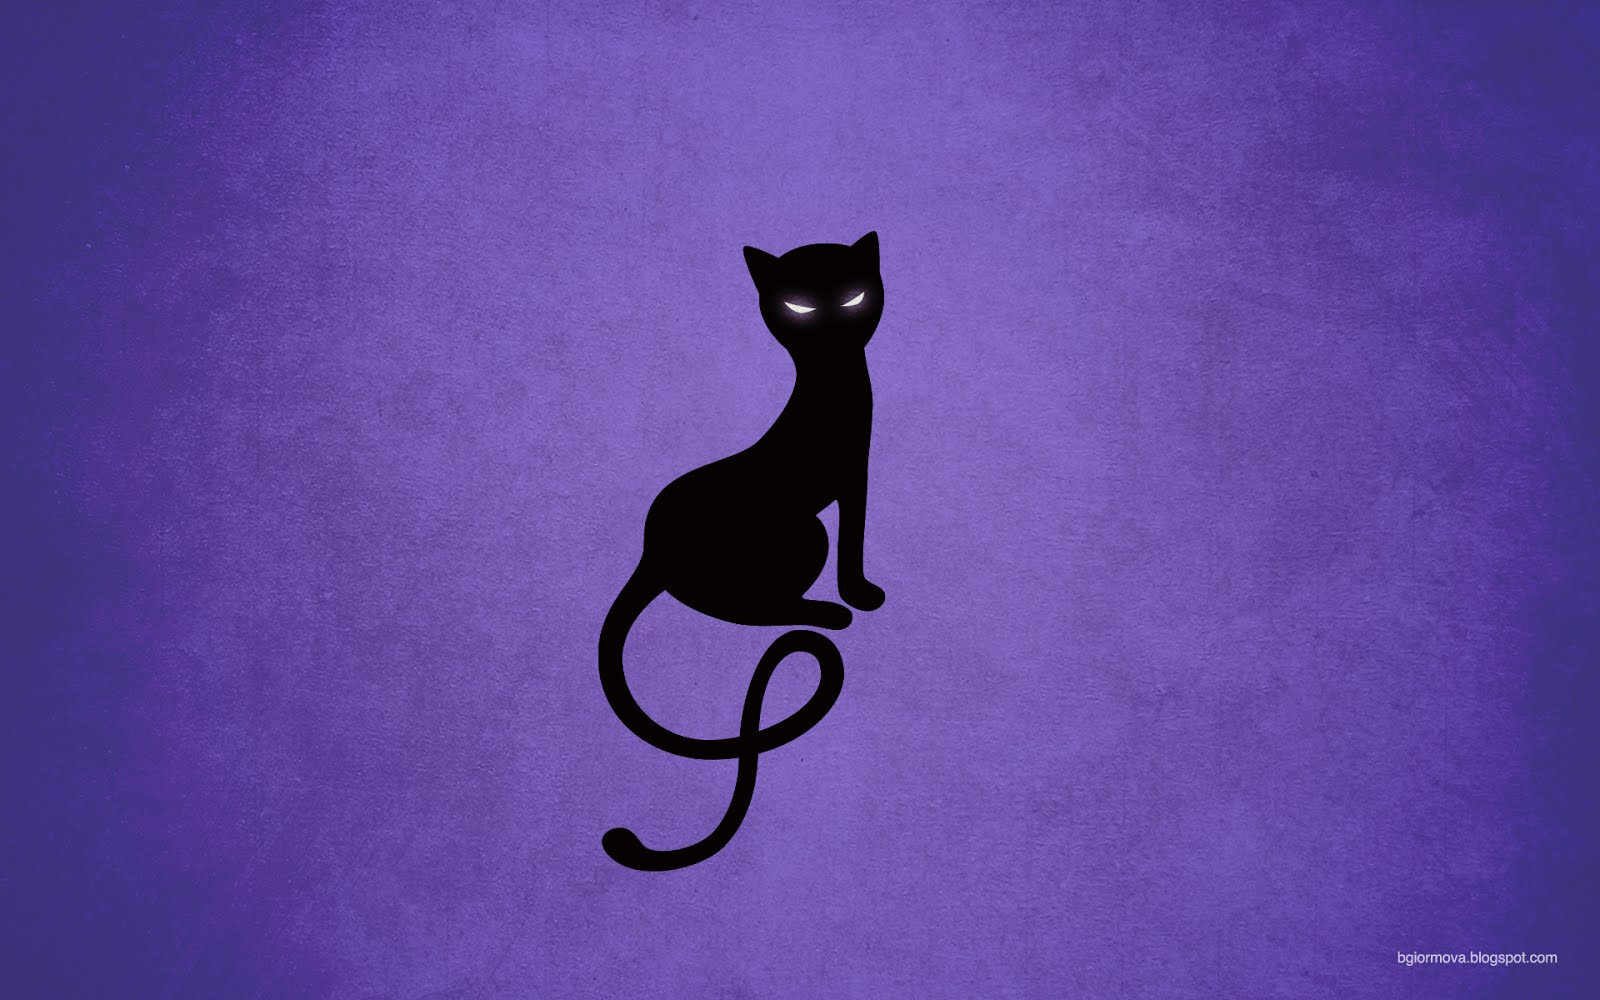 Gracious evil black cat desktop wallpaper in purple